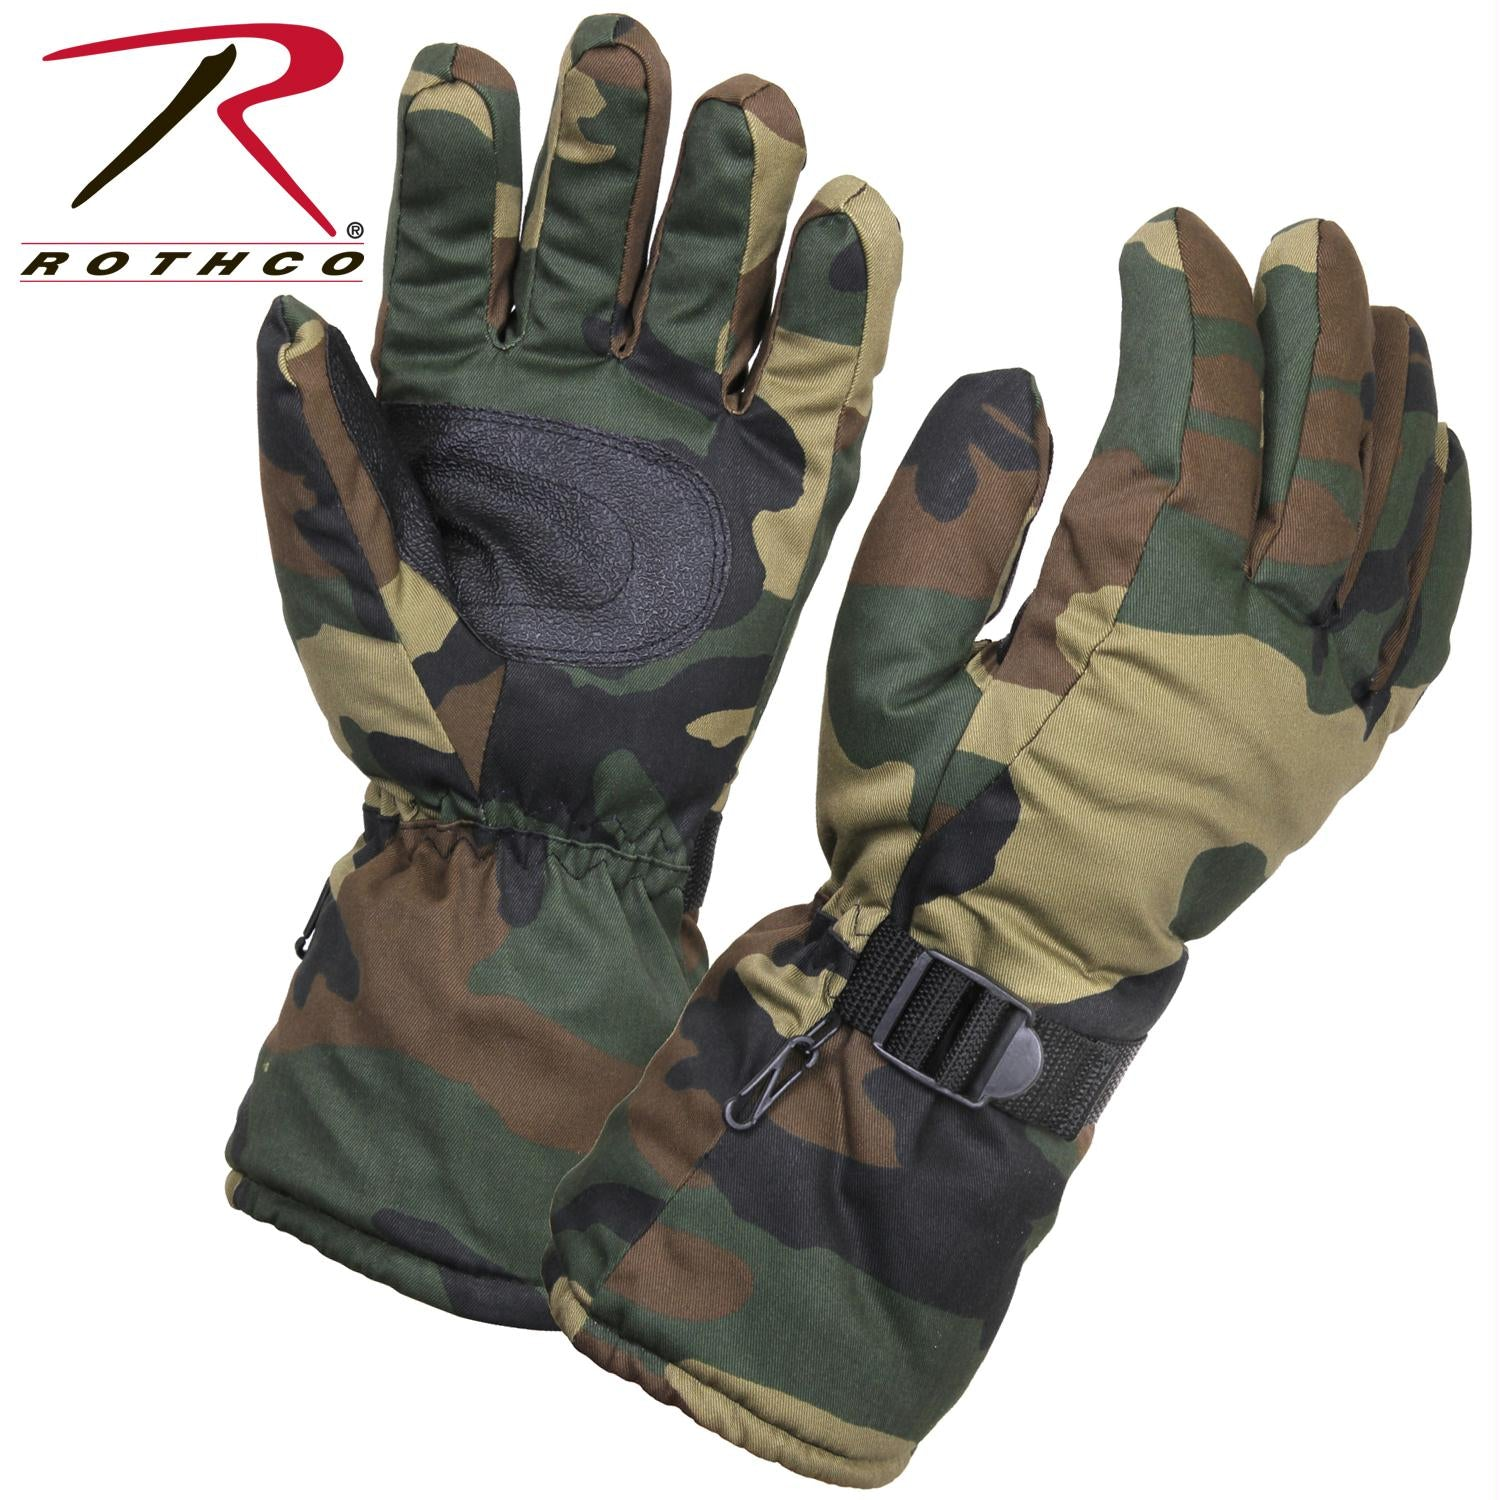 Rothco Extra-Long Insulated Gloves - Woodland Camo / XL